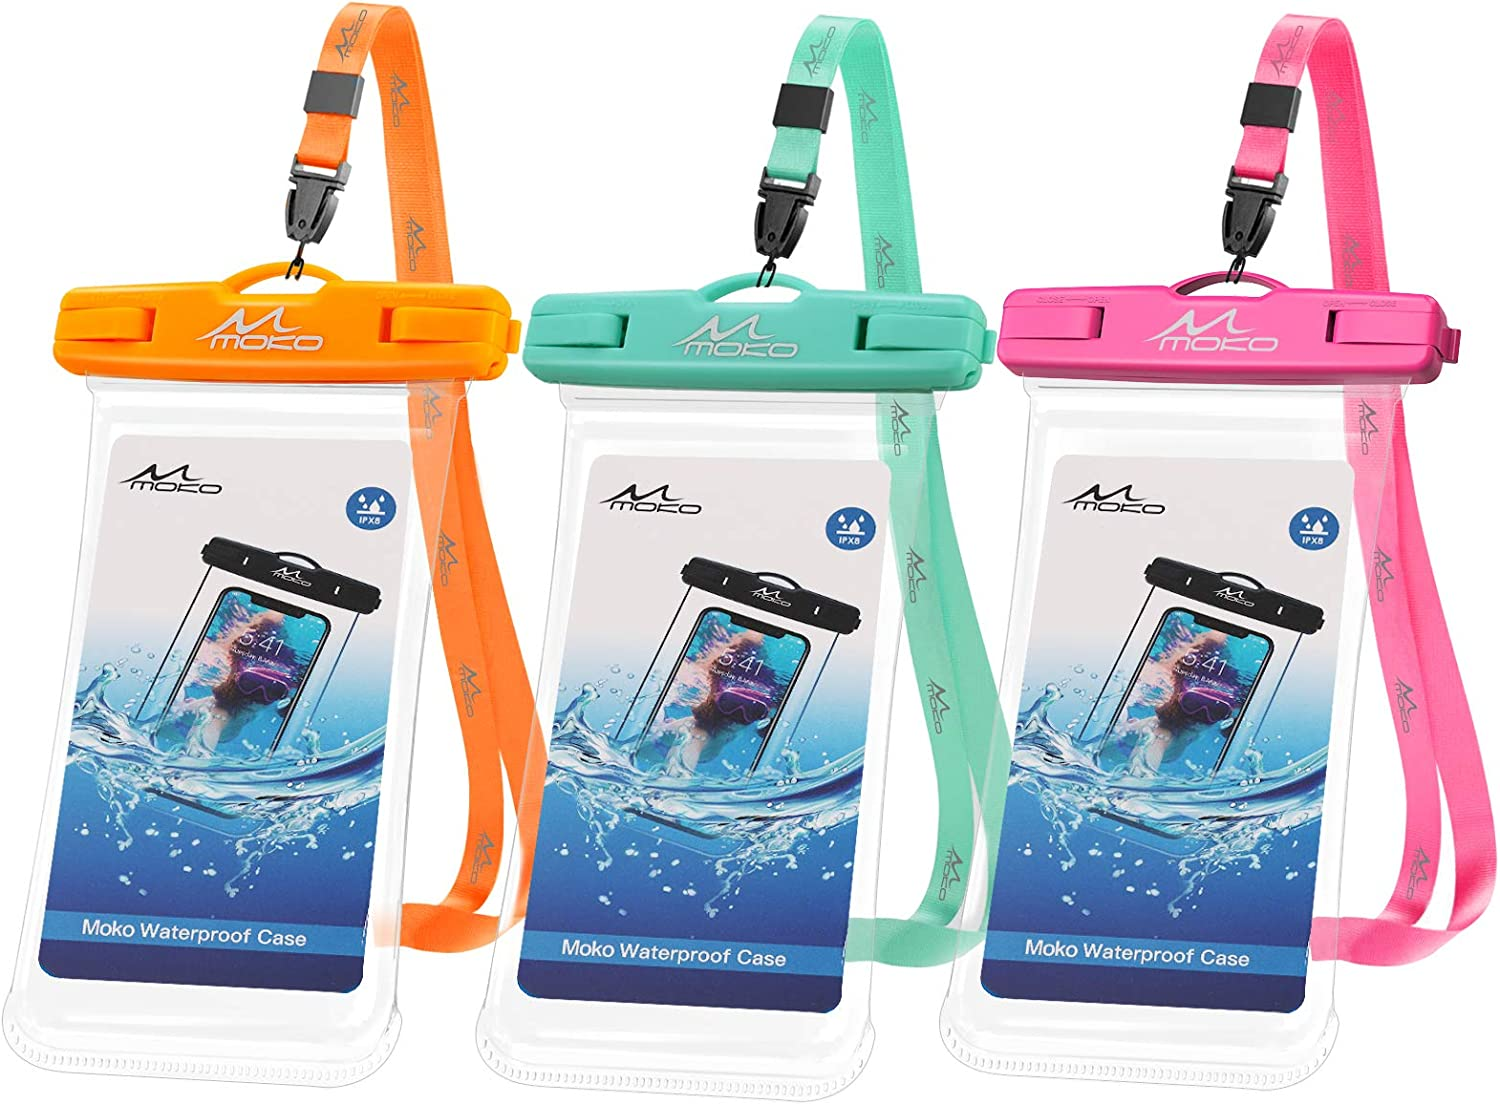 MoKo Waterproof Phone Pouch 3-Pack, Underwater Phone Case Dry Bag with Lanyard Compatible with iPhone 13/13 Pro Max/iPhone 12/12 Pro Max/11 Pro Max/X/Xr/Xs Max/8, Galaxy S21/S20, up to 7.5